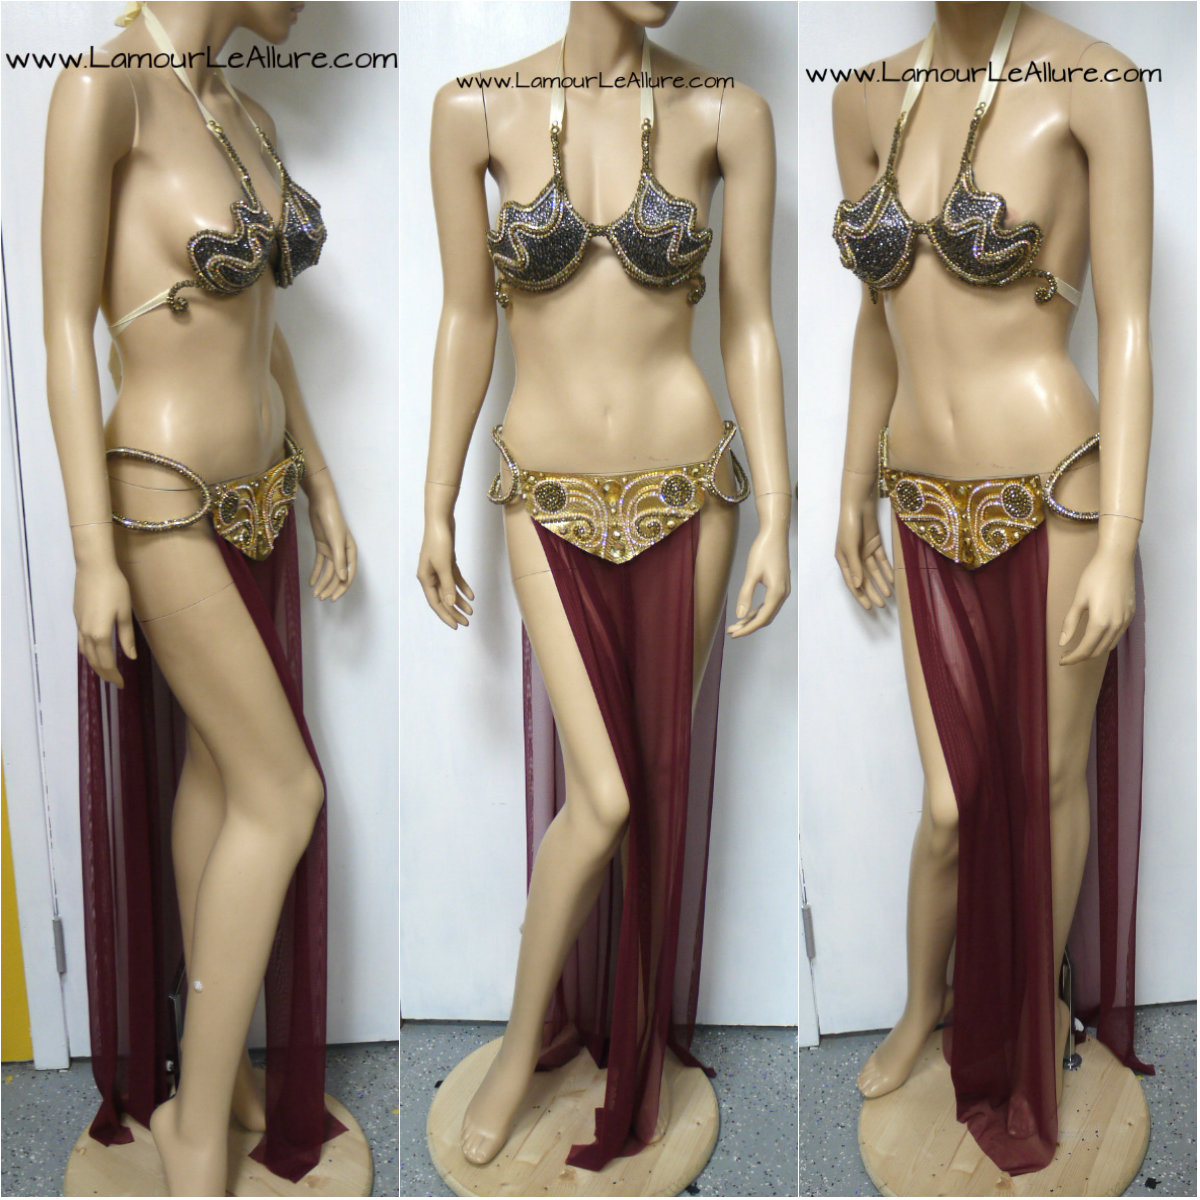 Star wars princess leia slave cosplay share